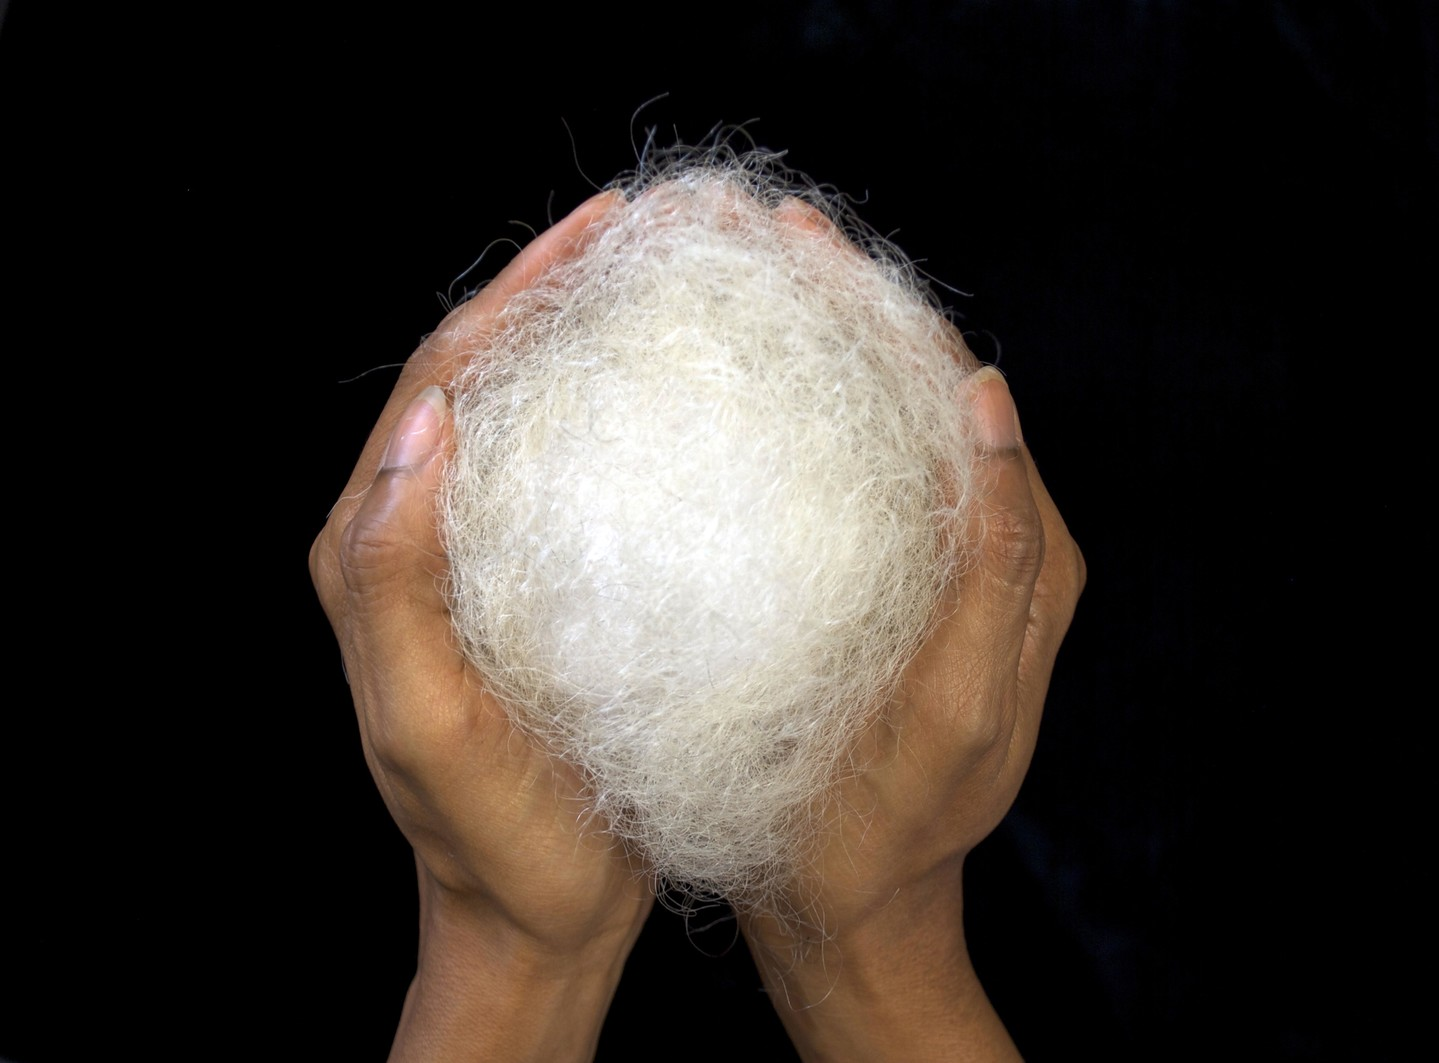 A pair of medium-dark skinned hands cupped together to hold a large, round tuft of white hair against a black background.